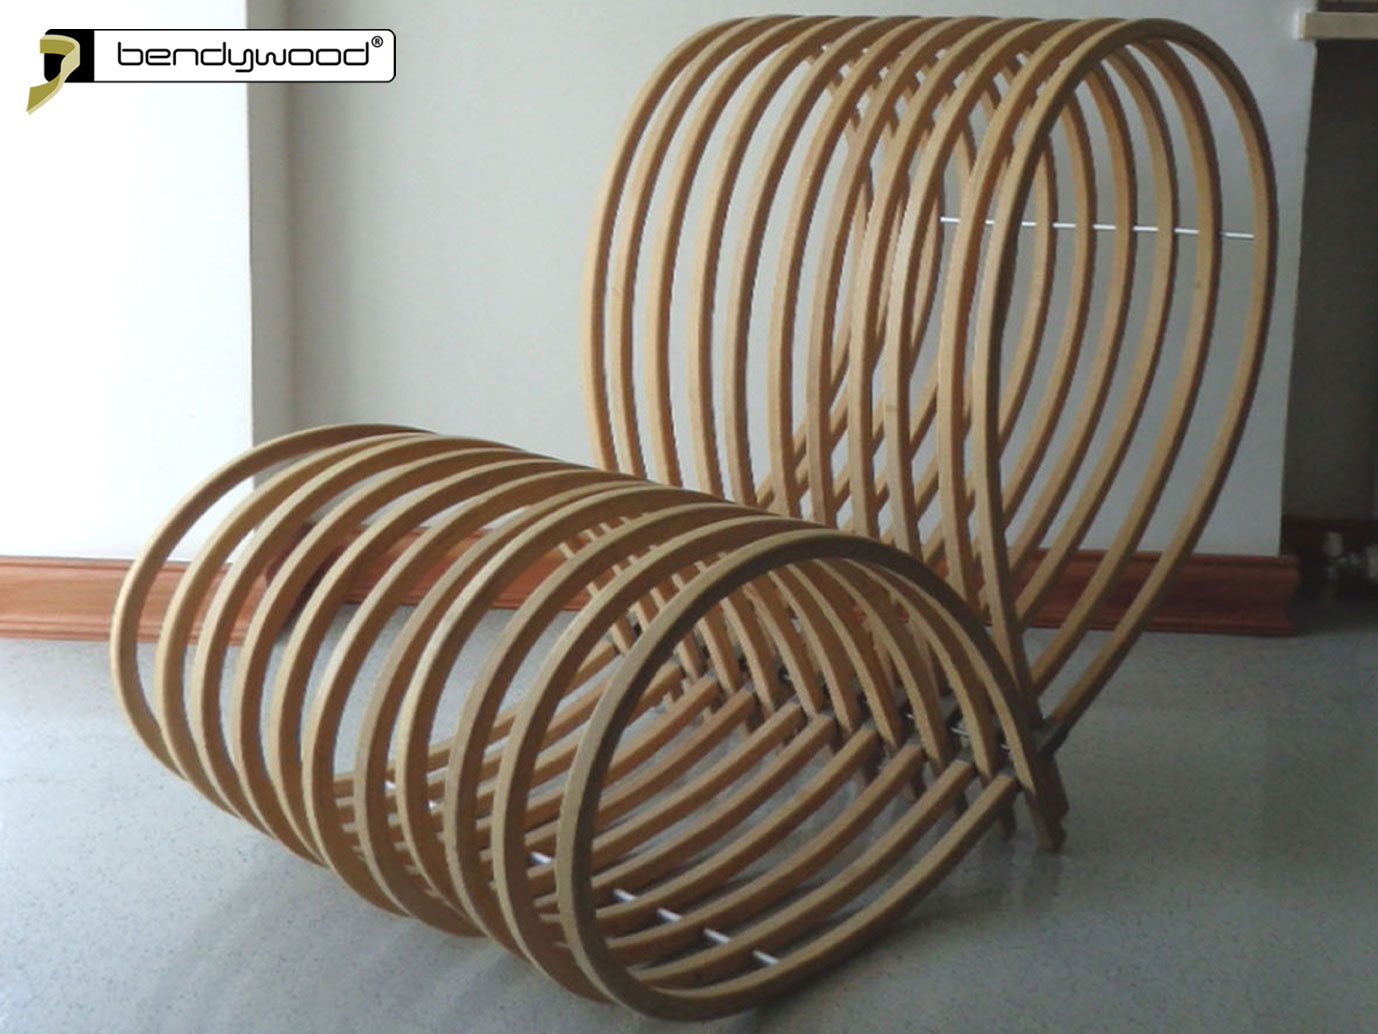 Armchair made of bent Bendywood®-strips